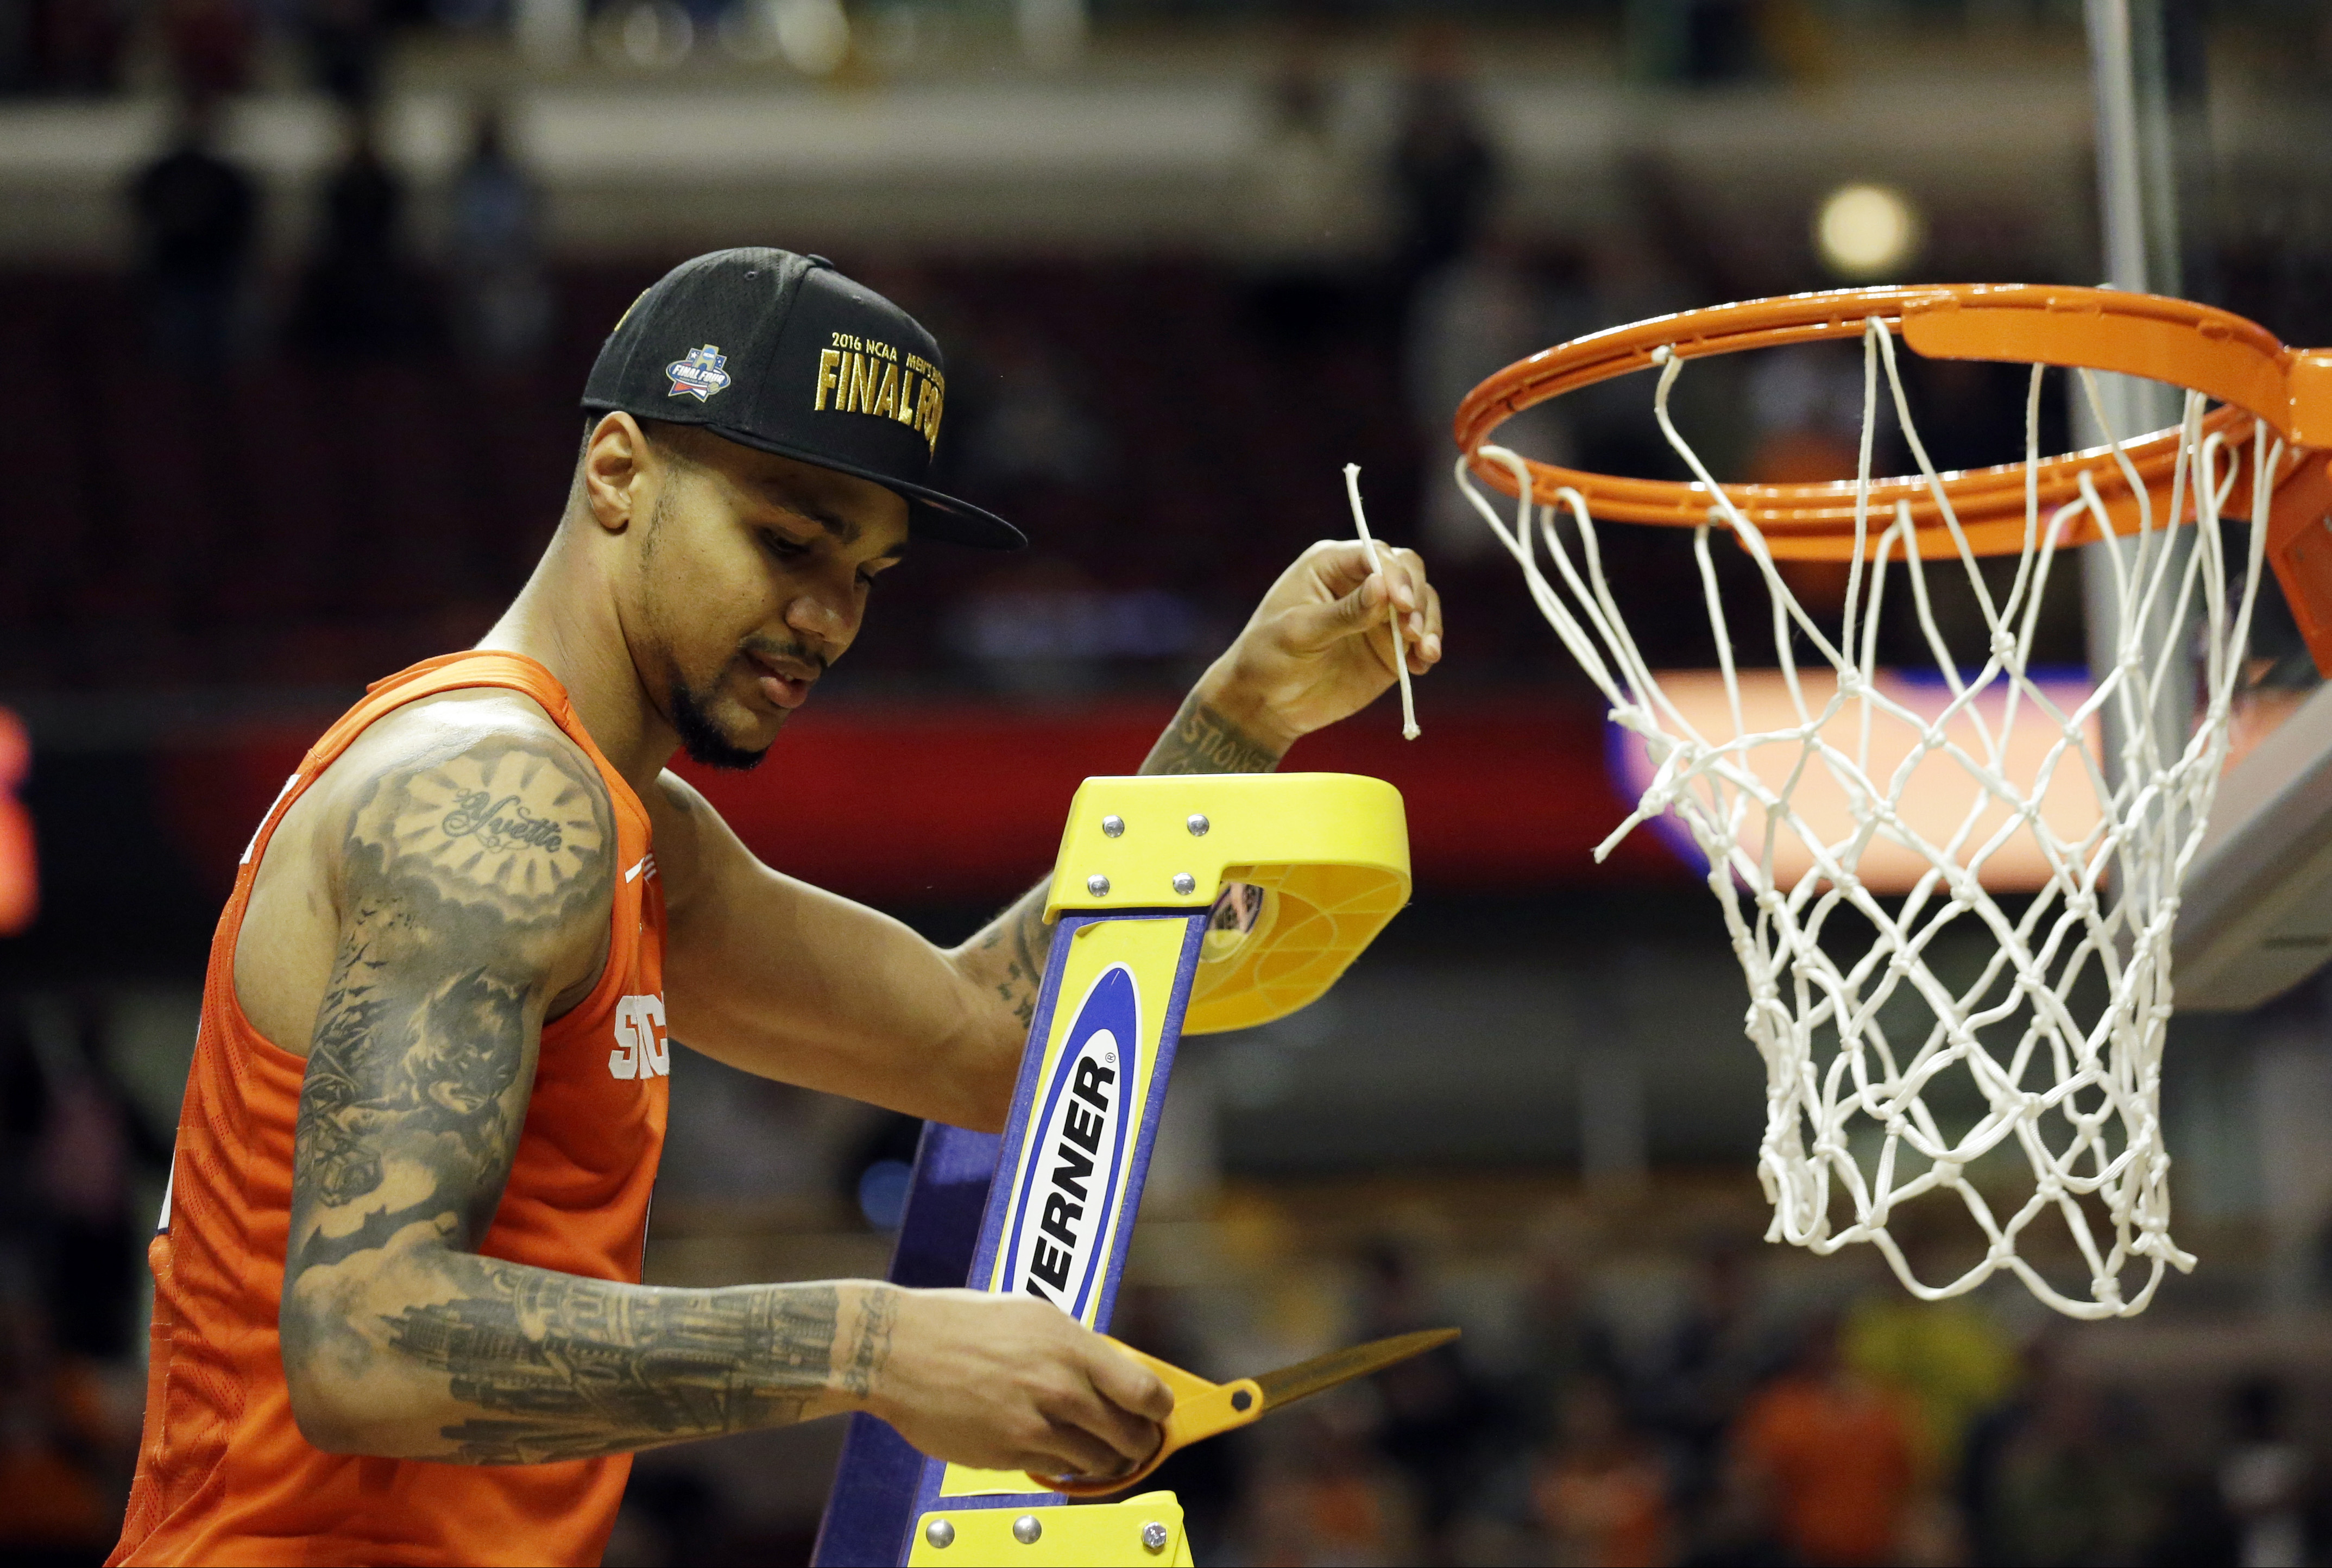 Syracuse's Michael Gbinije cuts down the net after their win against Virginia in an NCAA college basketball game in the regional finals of the NCAA Tournament, Sunday, March 27, 2016, in Chicago. Syracuse won 68-62. (AP Photo/Nam Y. Huh)